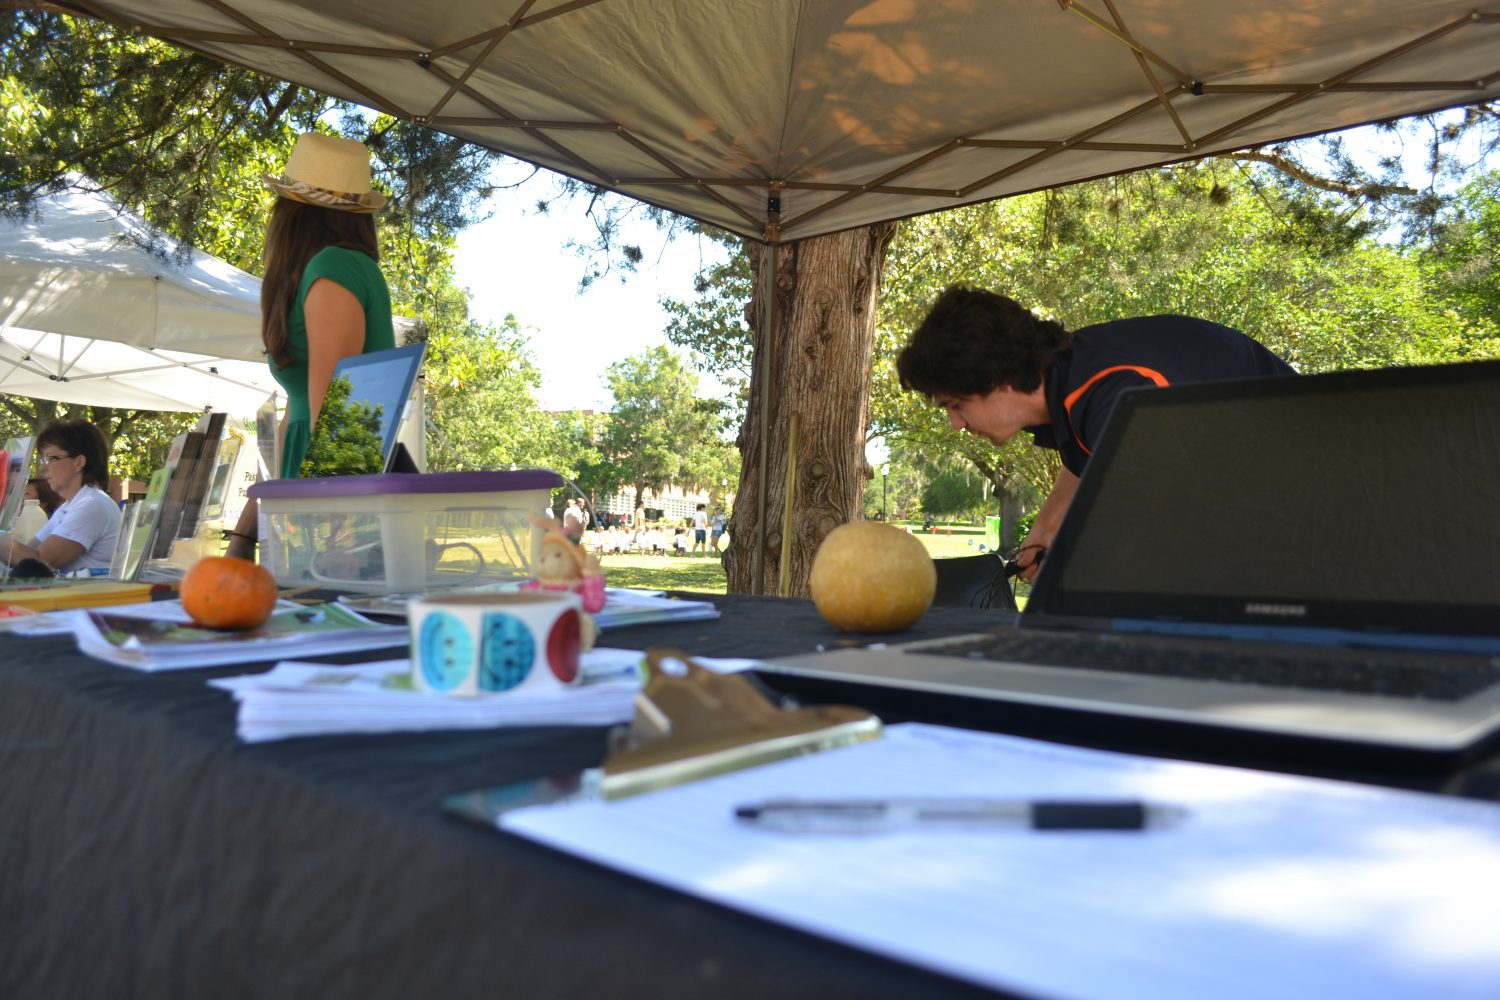 Representatives from Alachua County Sustainability Programs Grant McCleod and Corinne Gentile promote the Farmer's market and local farmers at Campus Earth Day.